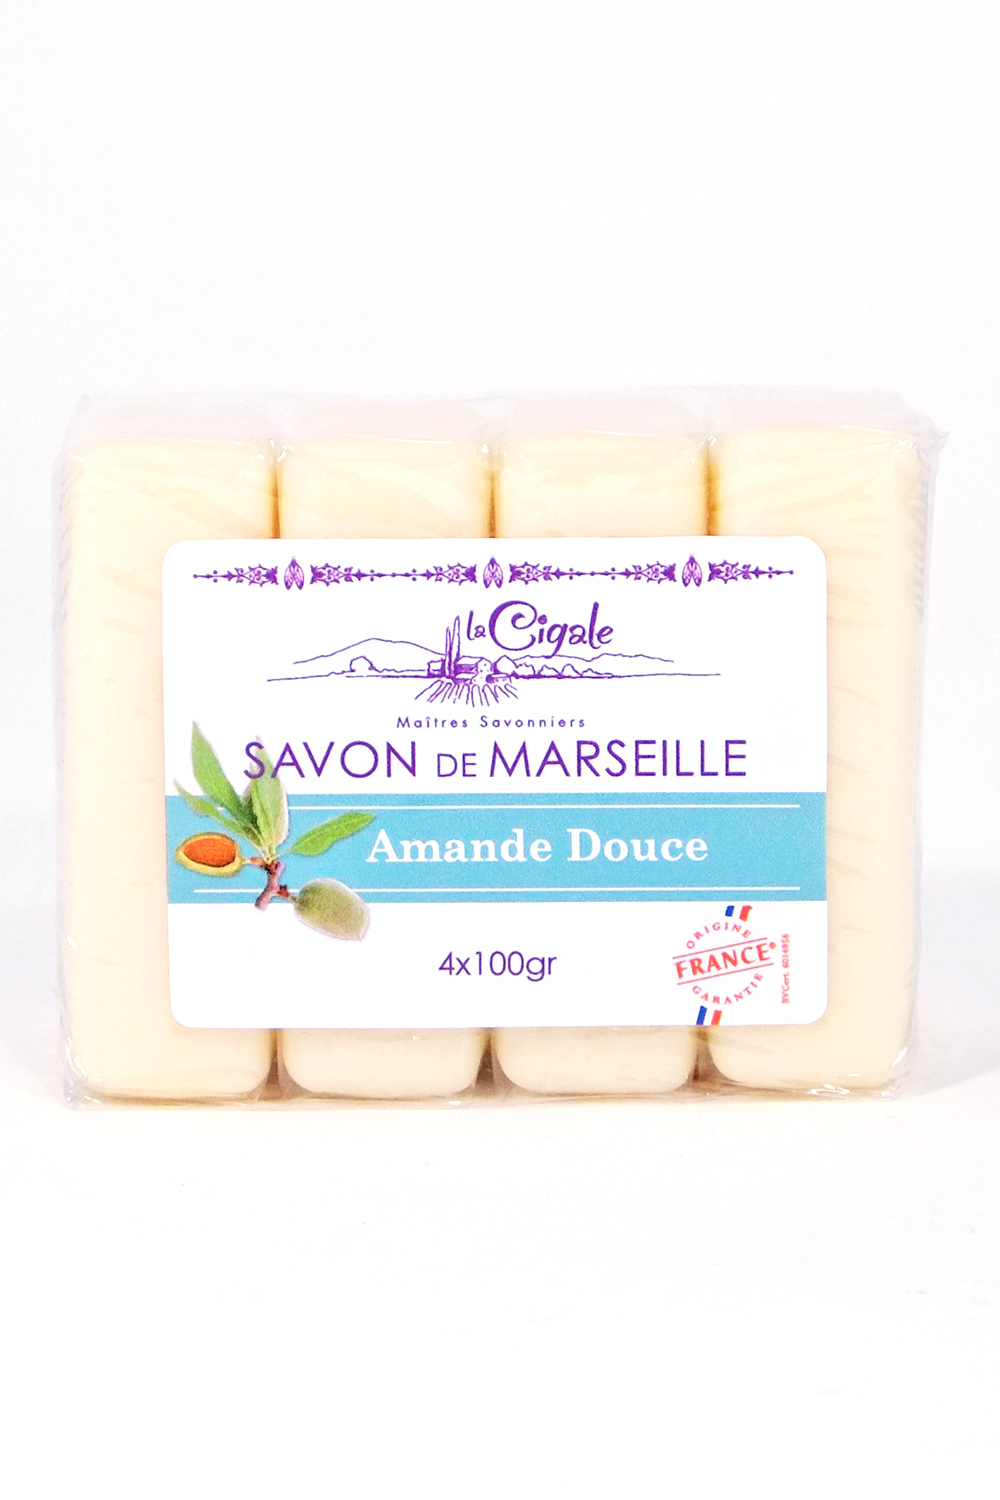 savon de marseille amande douce 4x100g savonnerie la cigale. Black Bedroom Furniture Sets. Home Design Ideas